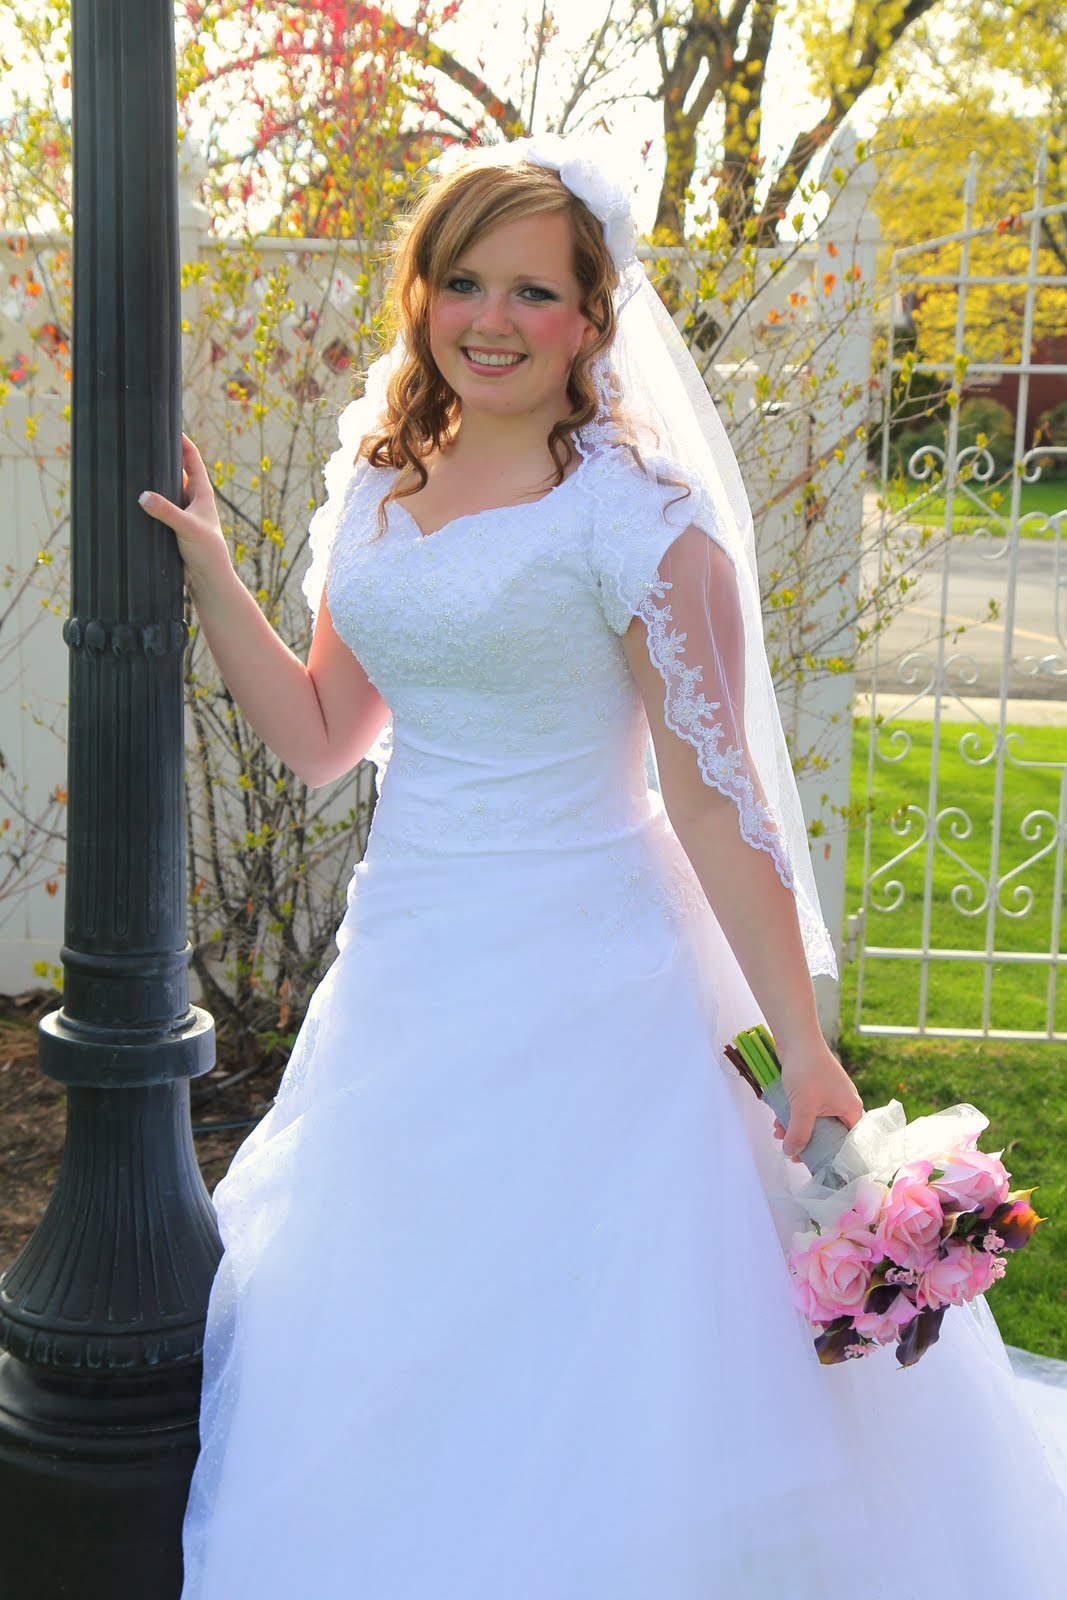 Wedding Dresses Spanish Fork Utah : Family and wedding bridals at the chillon spanish fork utah